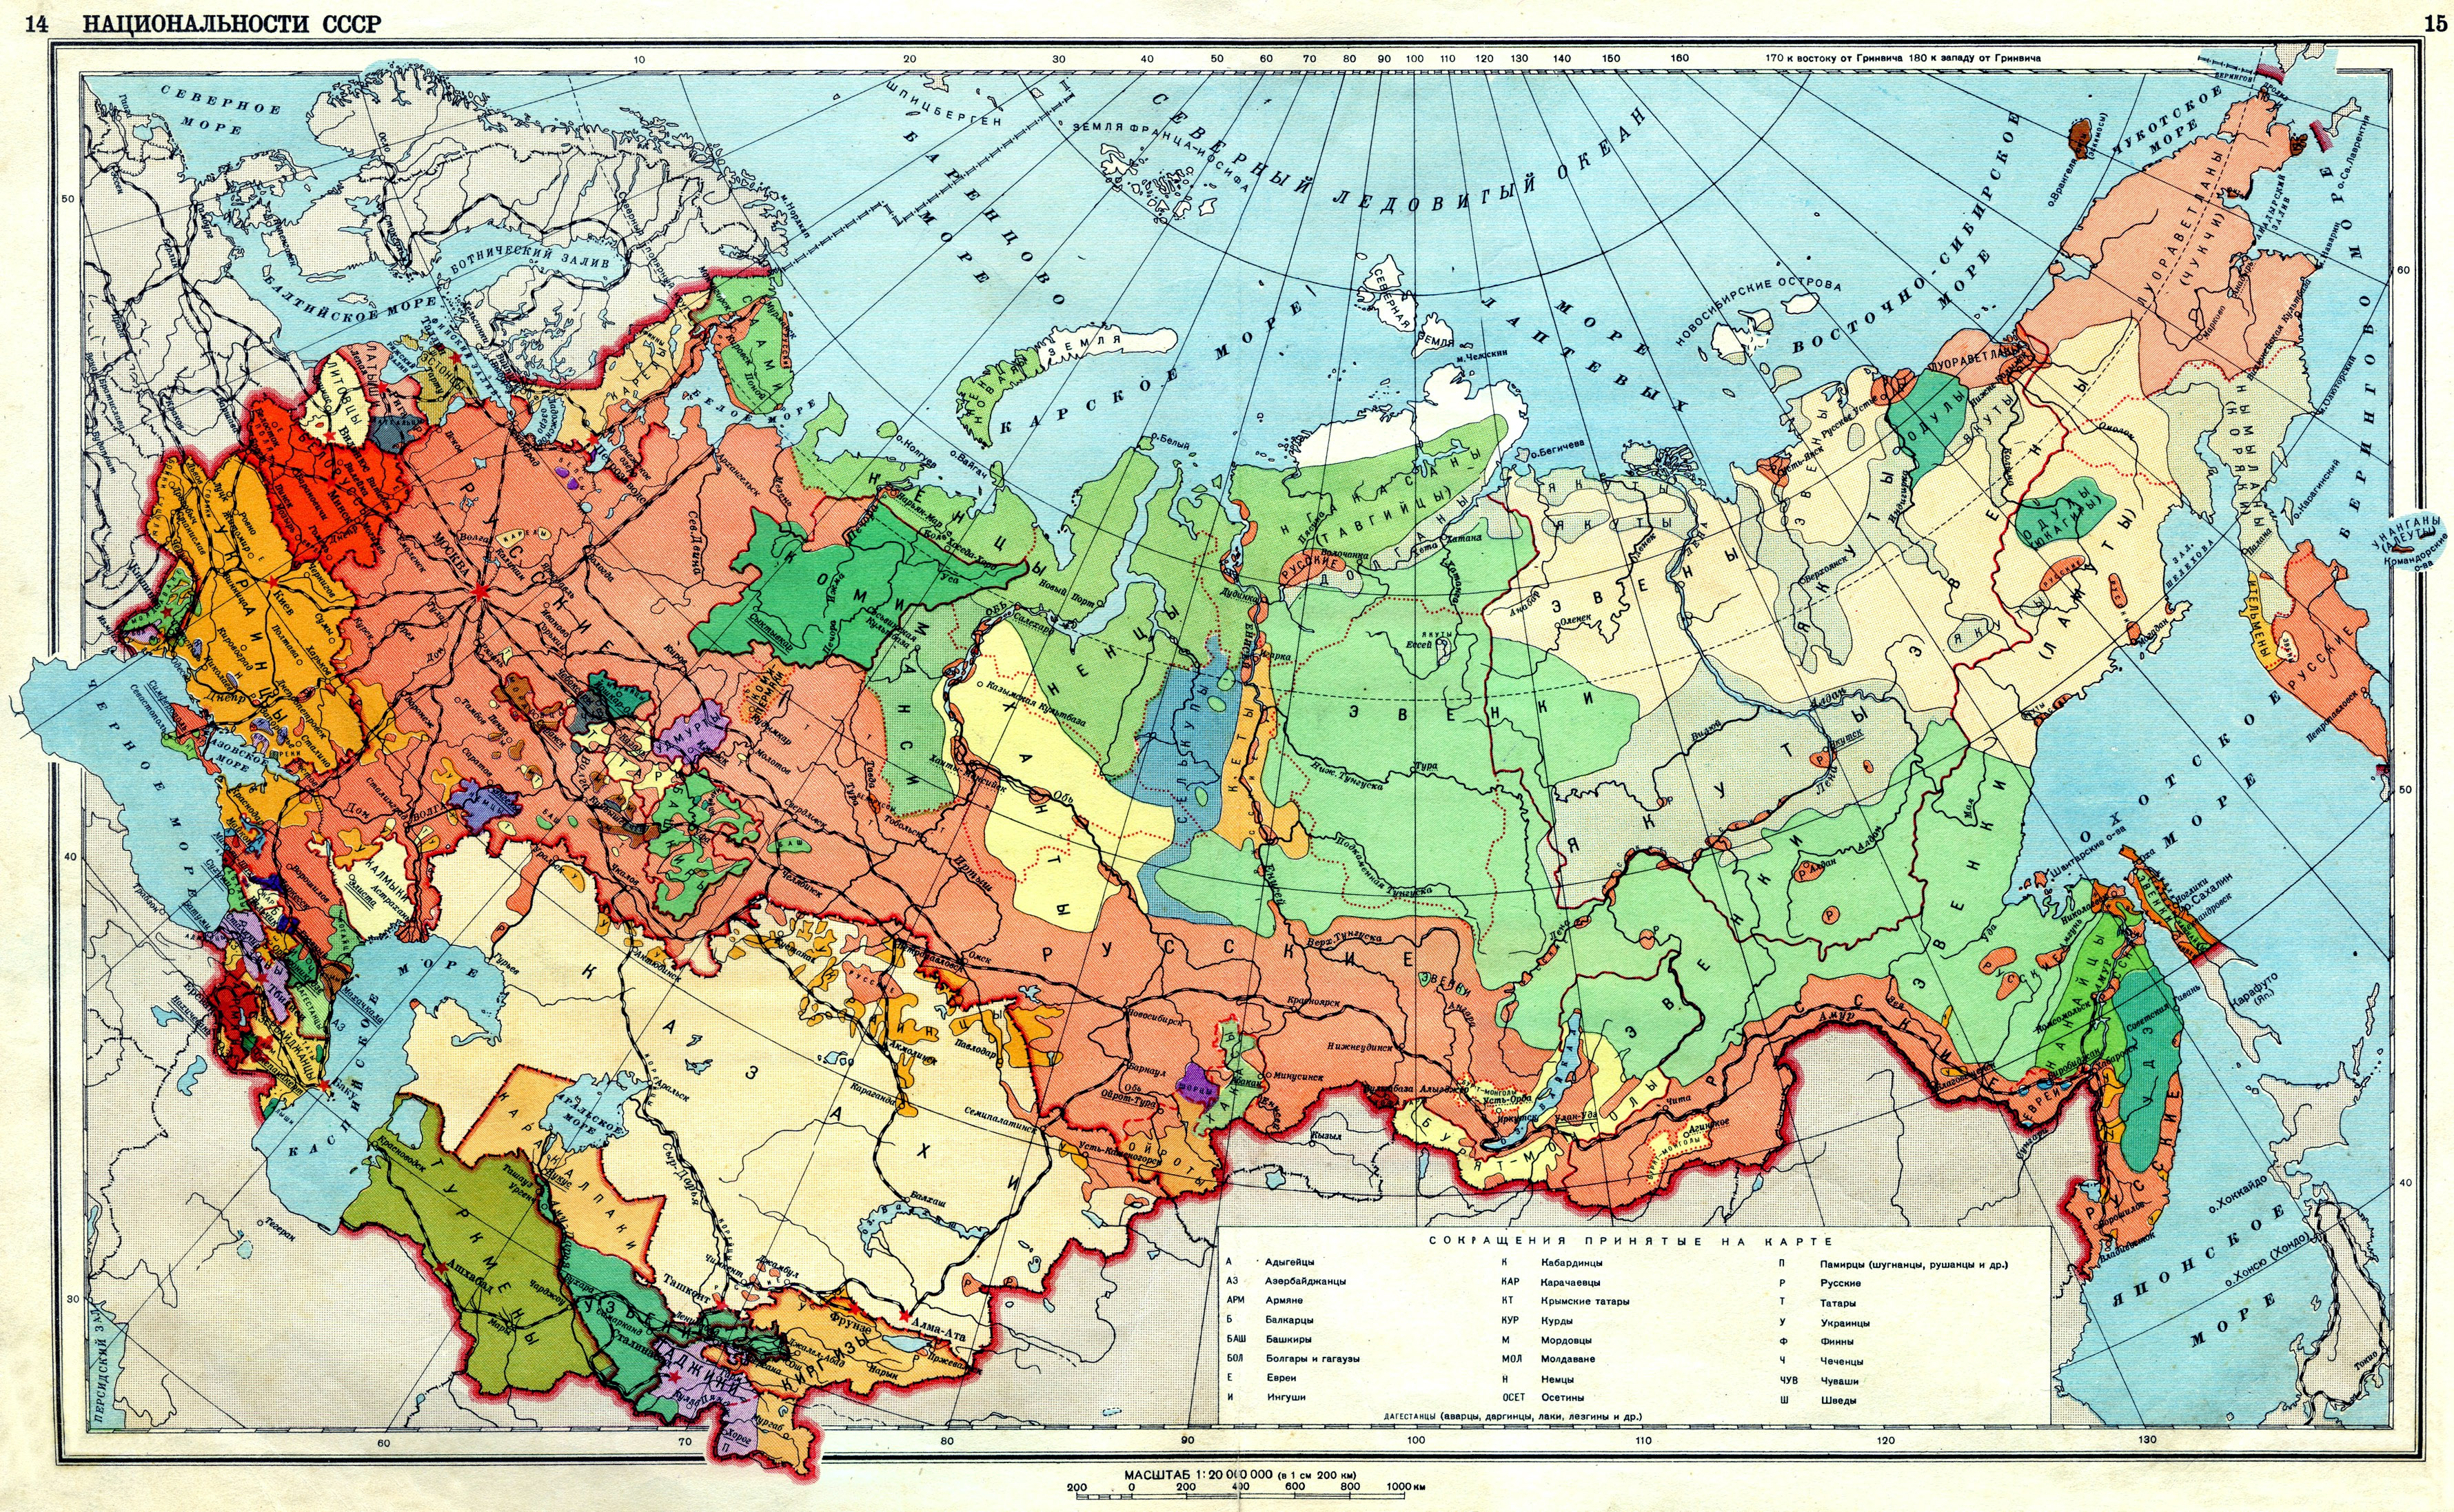 https://upload.wikimedia.org/wikipedia/commons/4/4f/Ethnic_map_USSR_1941.jpg